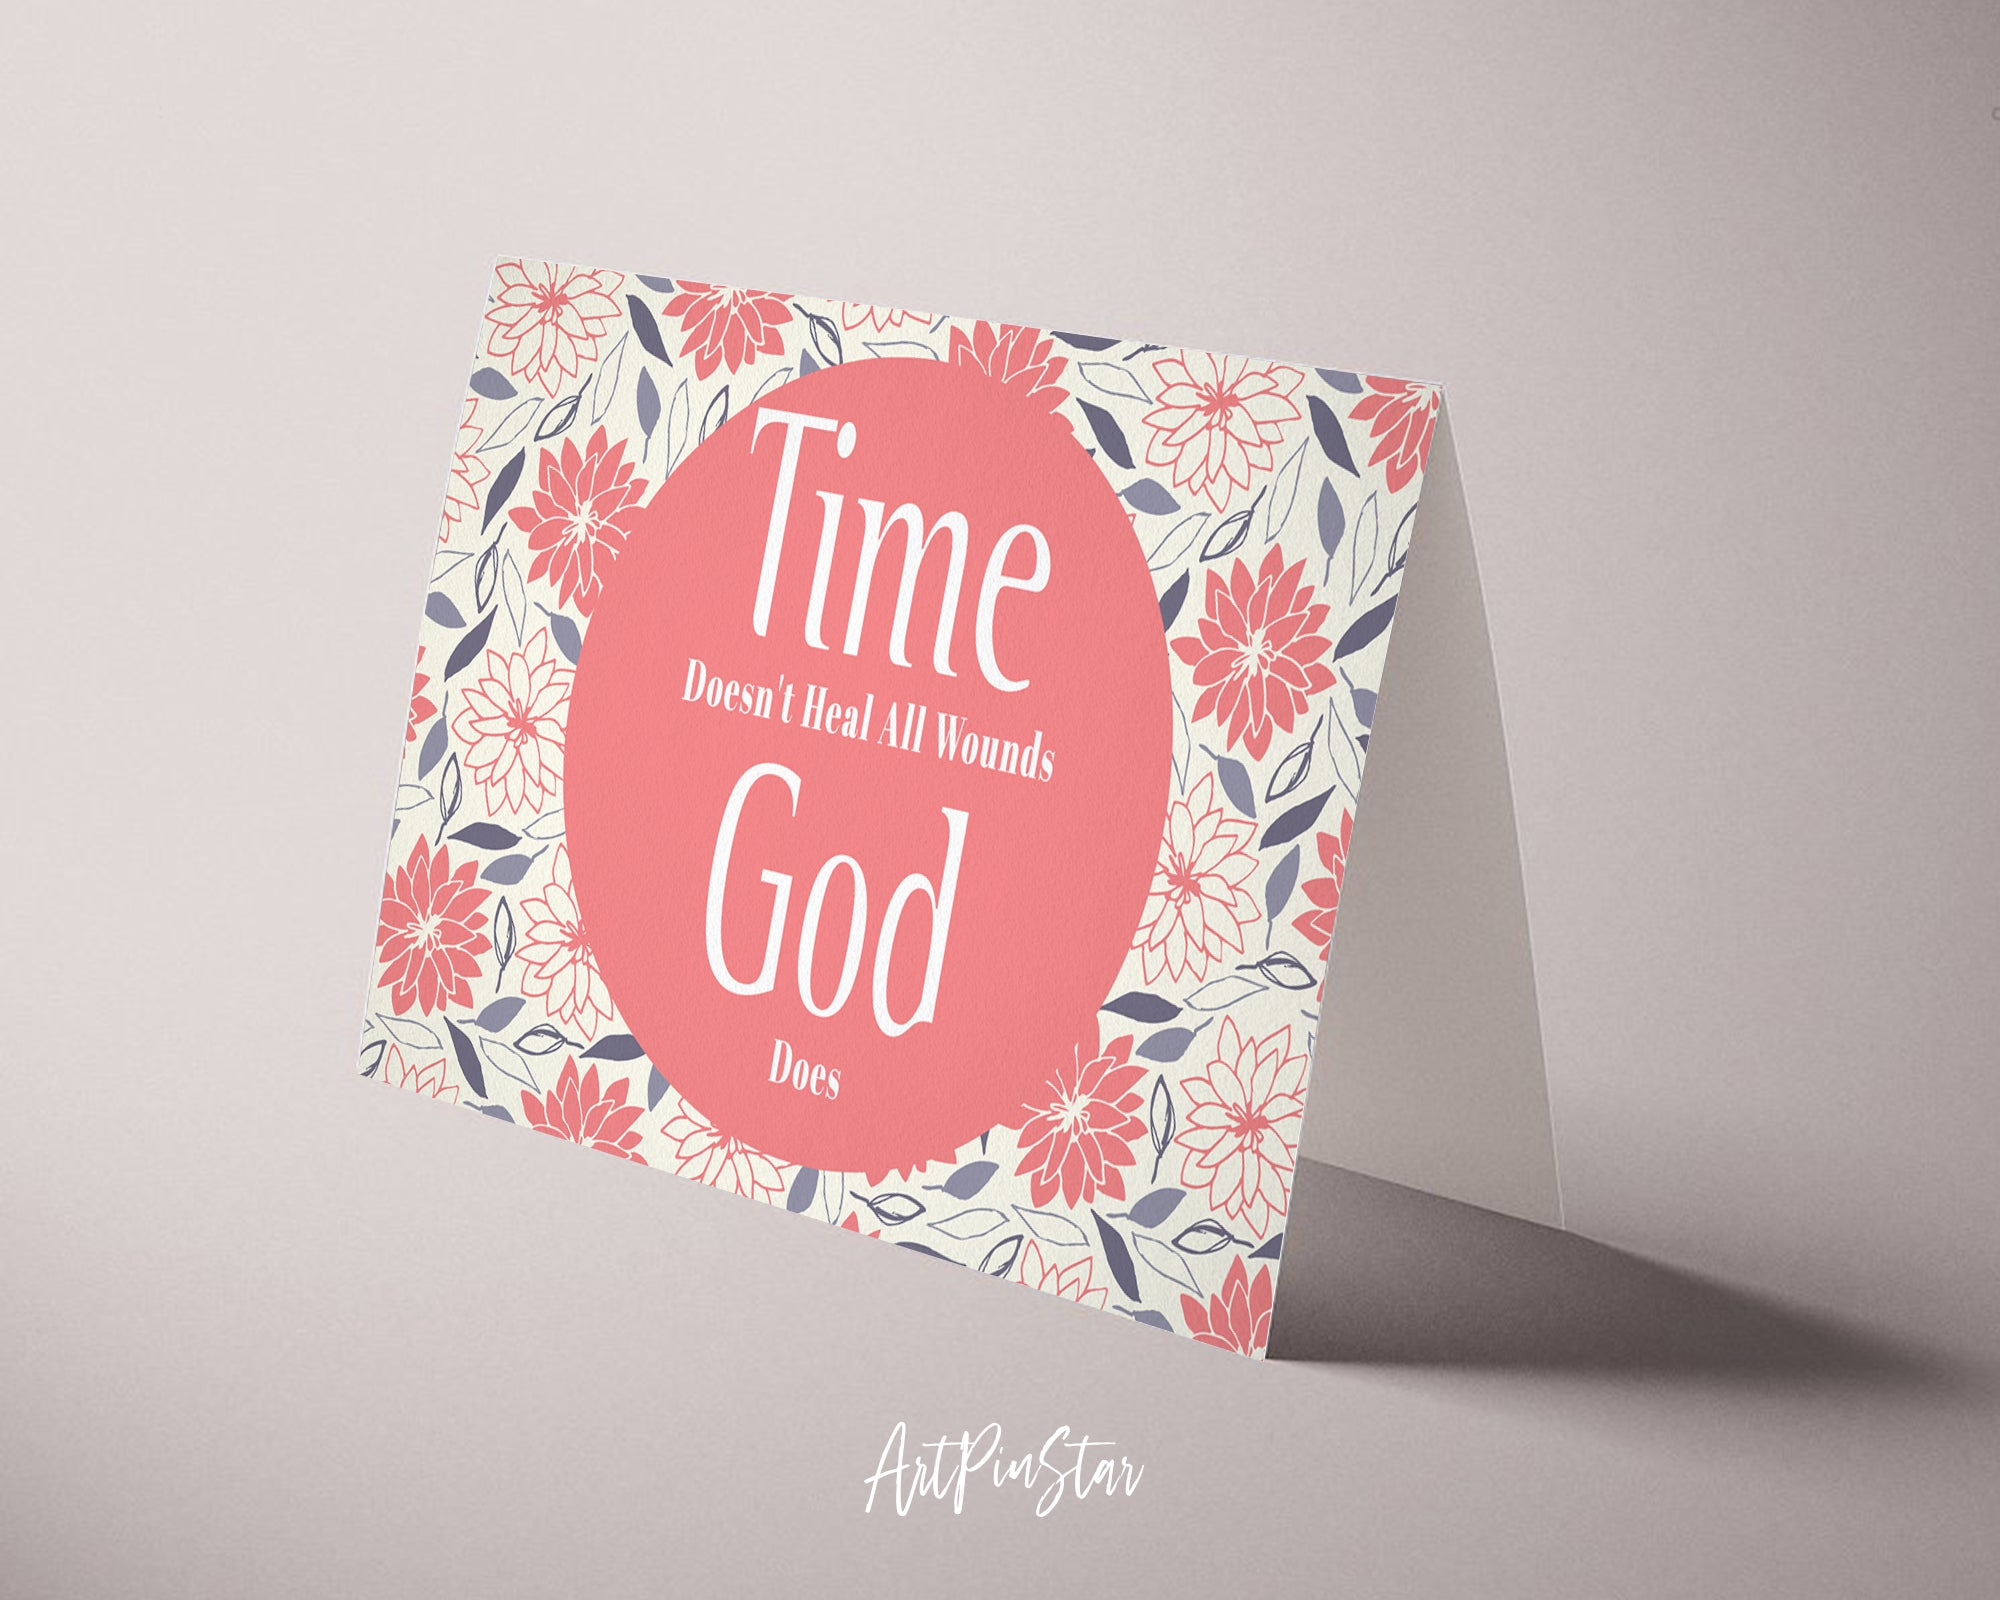 Time doesn't heal all wounds God does Bible Verse Customized Greeting Card